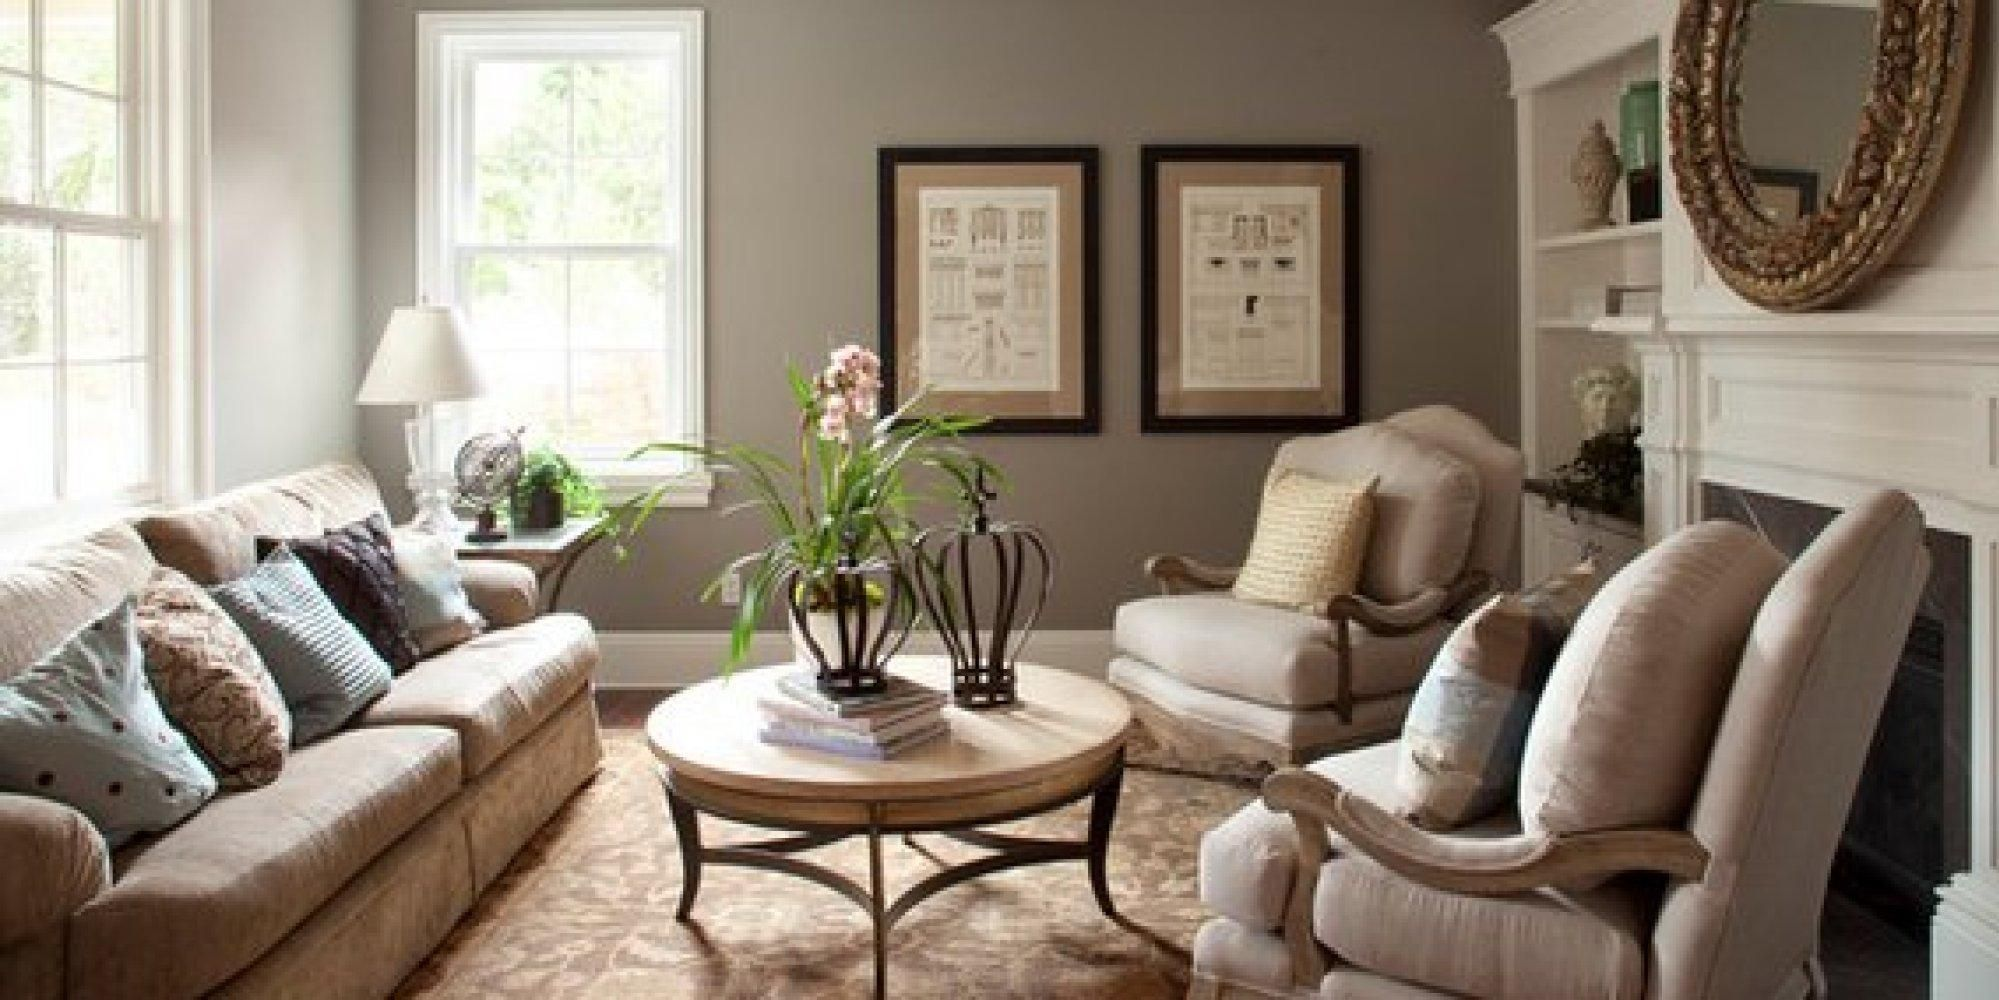 Nicedesignoflivingroomdecorideawithwhitesofaandbrown Captivating Circular Living Room Design Design Ideas